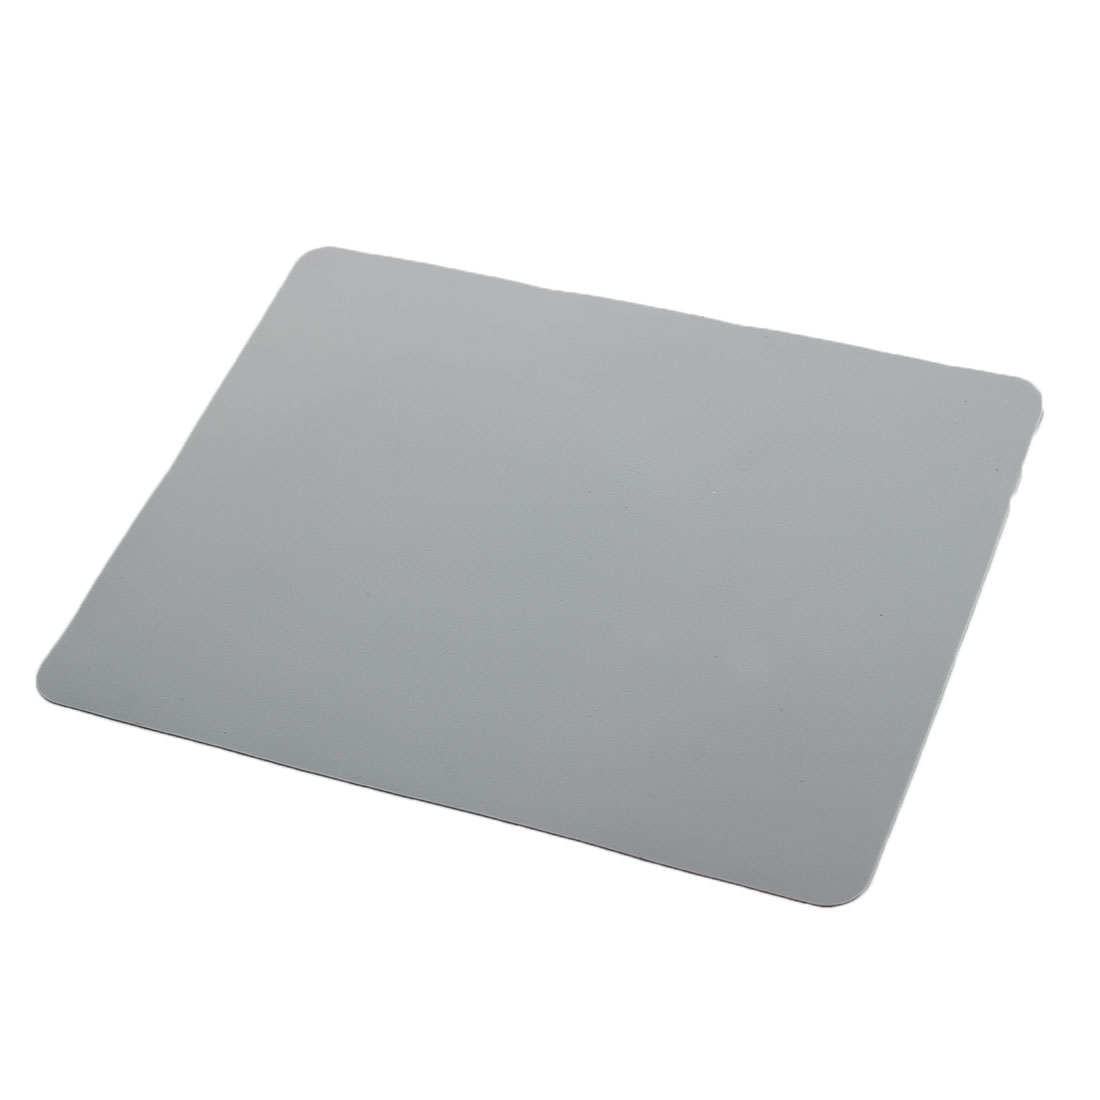 Silicone Mouse Pad Mat Gray for Computer Notebook